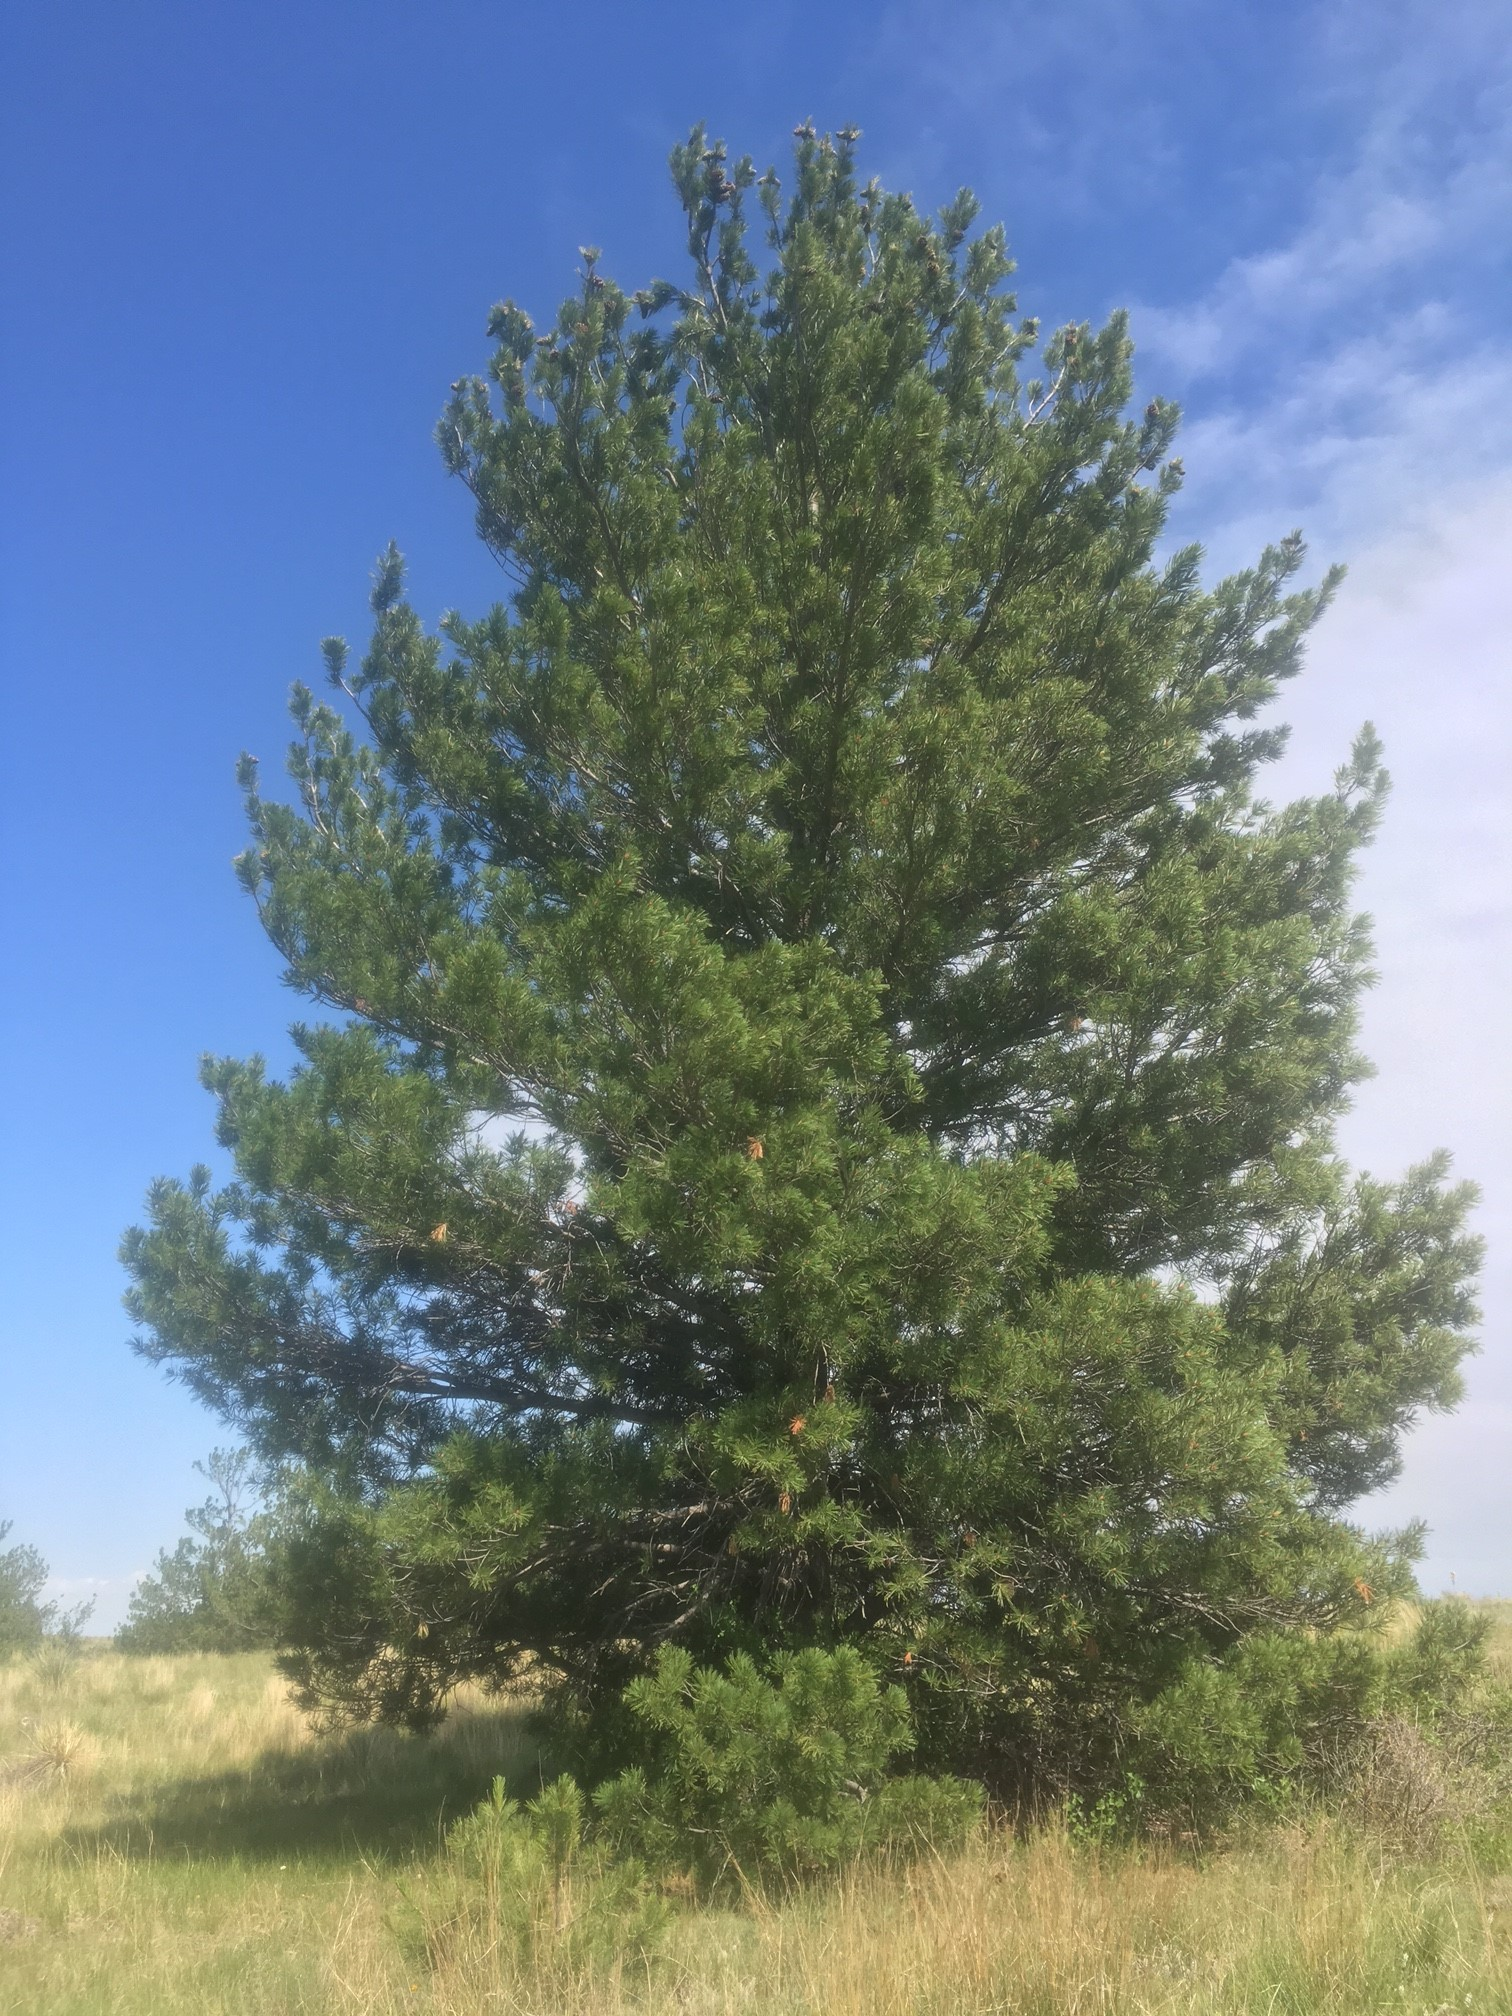 Limber pine in Kimball County